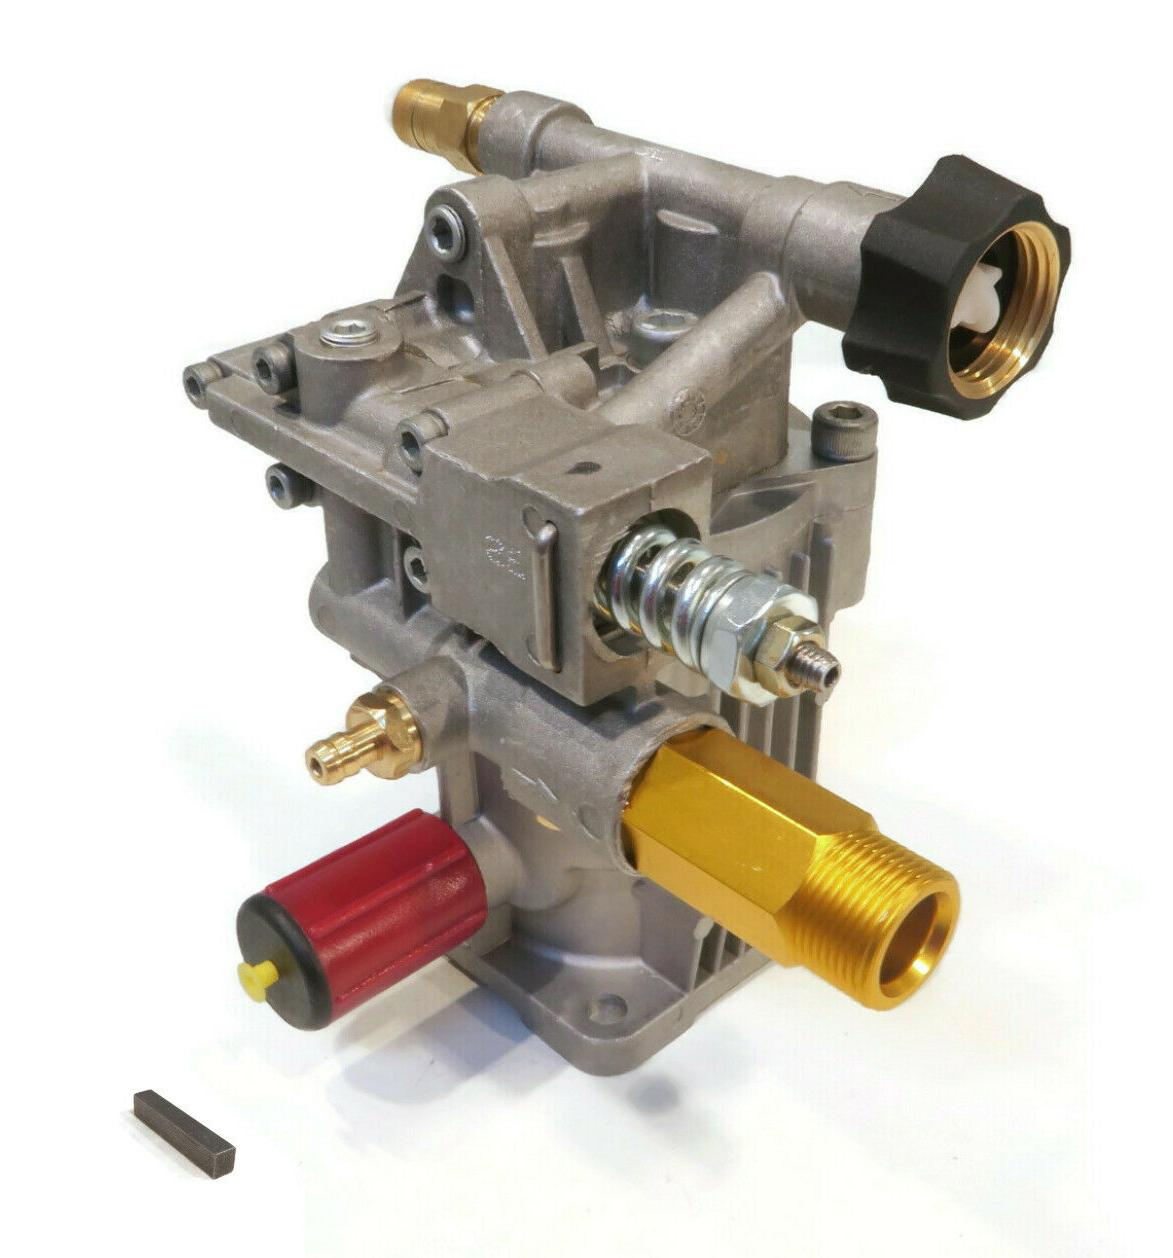 New PRESSURE WASHER PUMP fits Honda Excell XR2500 XR2600 XC2